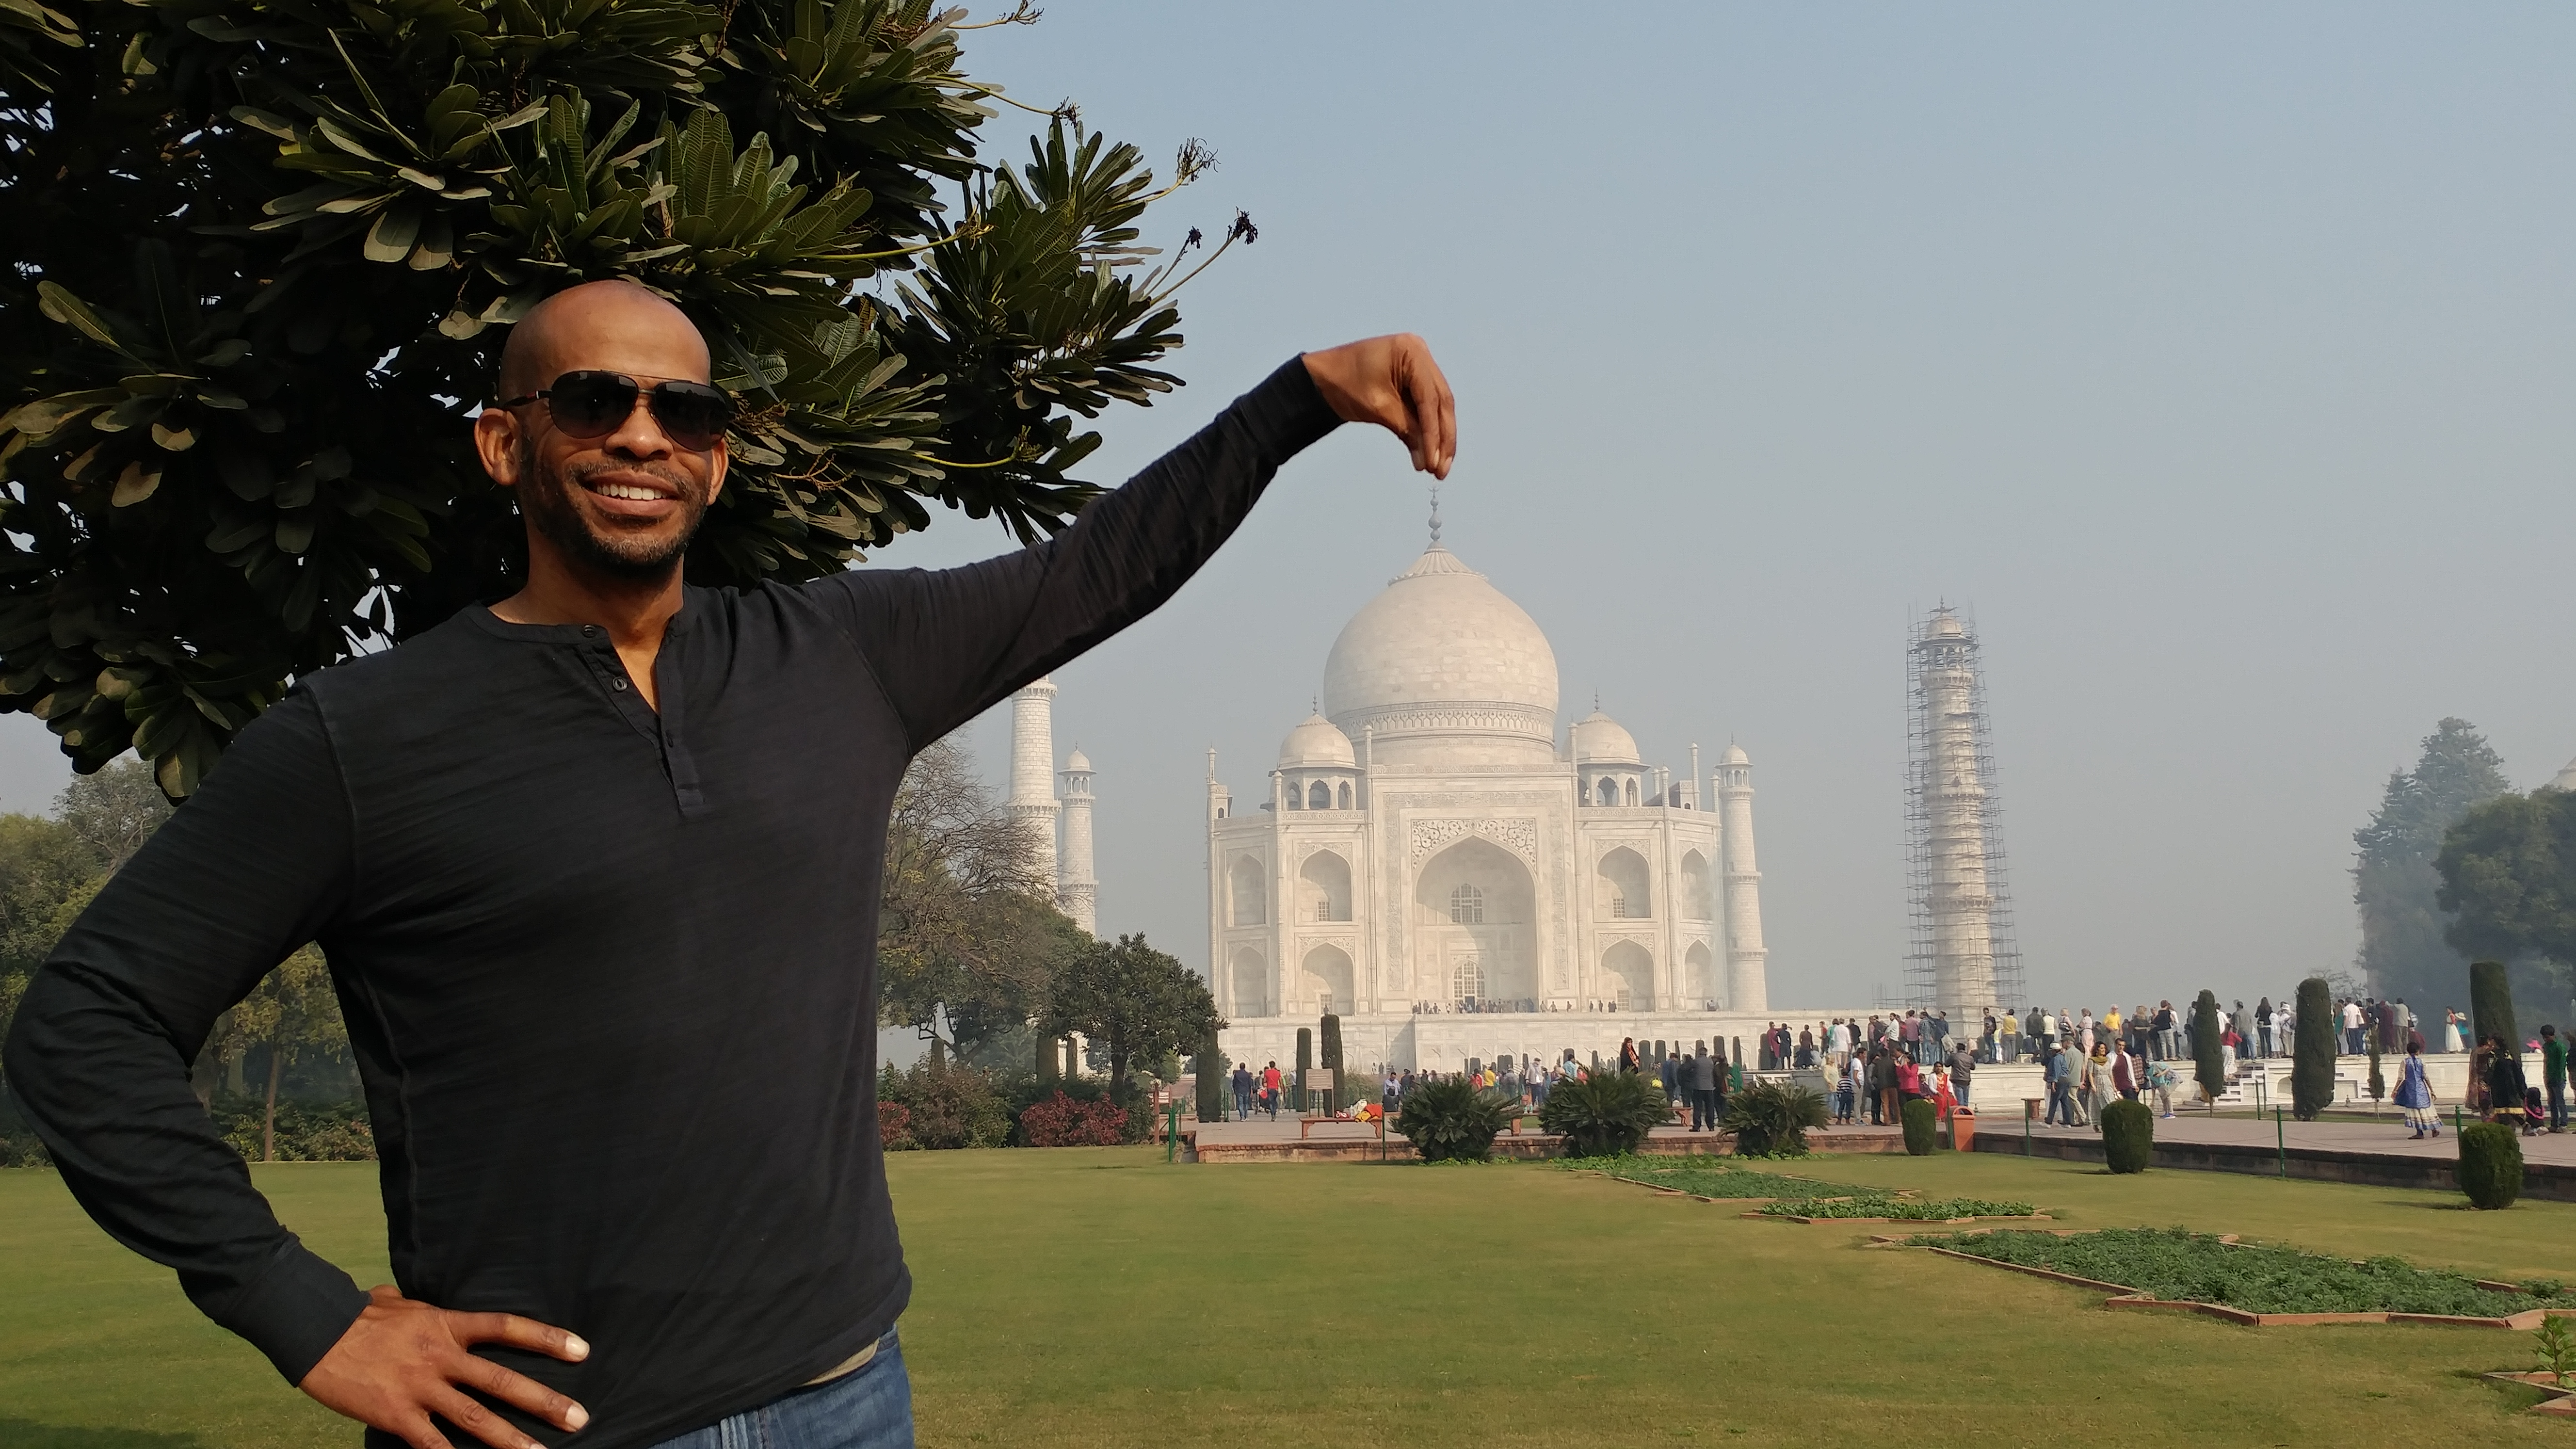 Holding the Taj